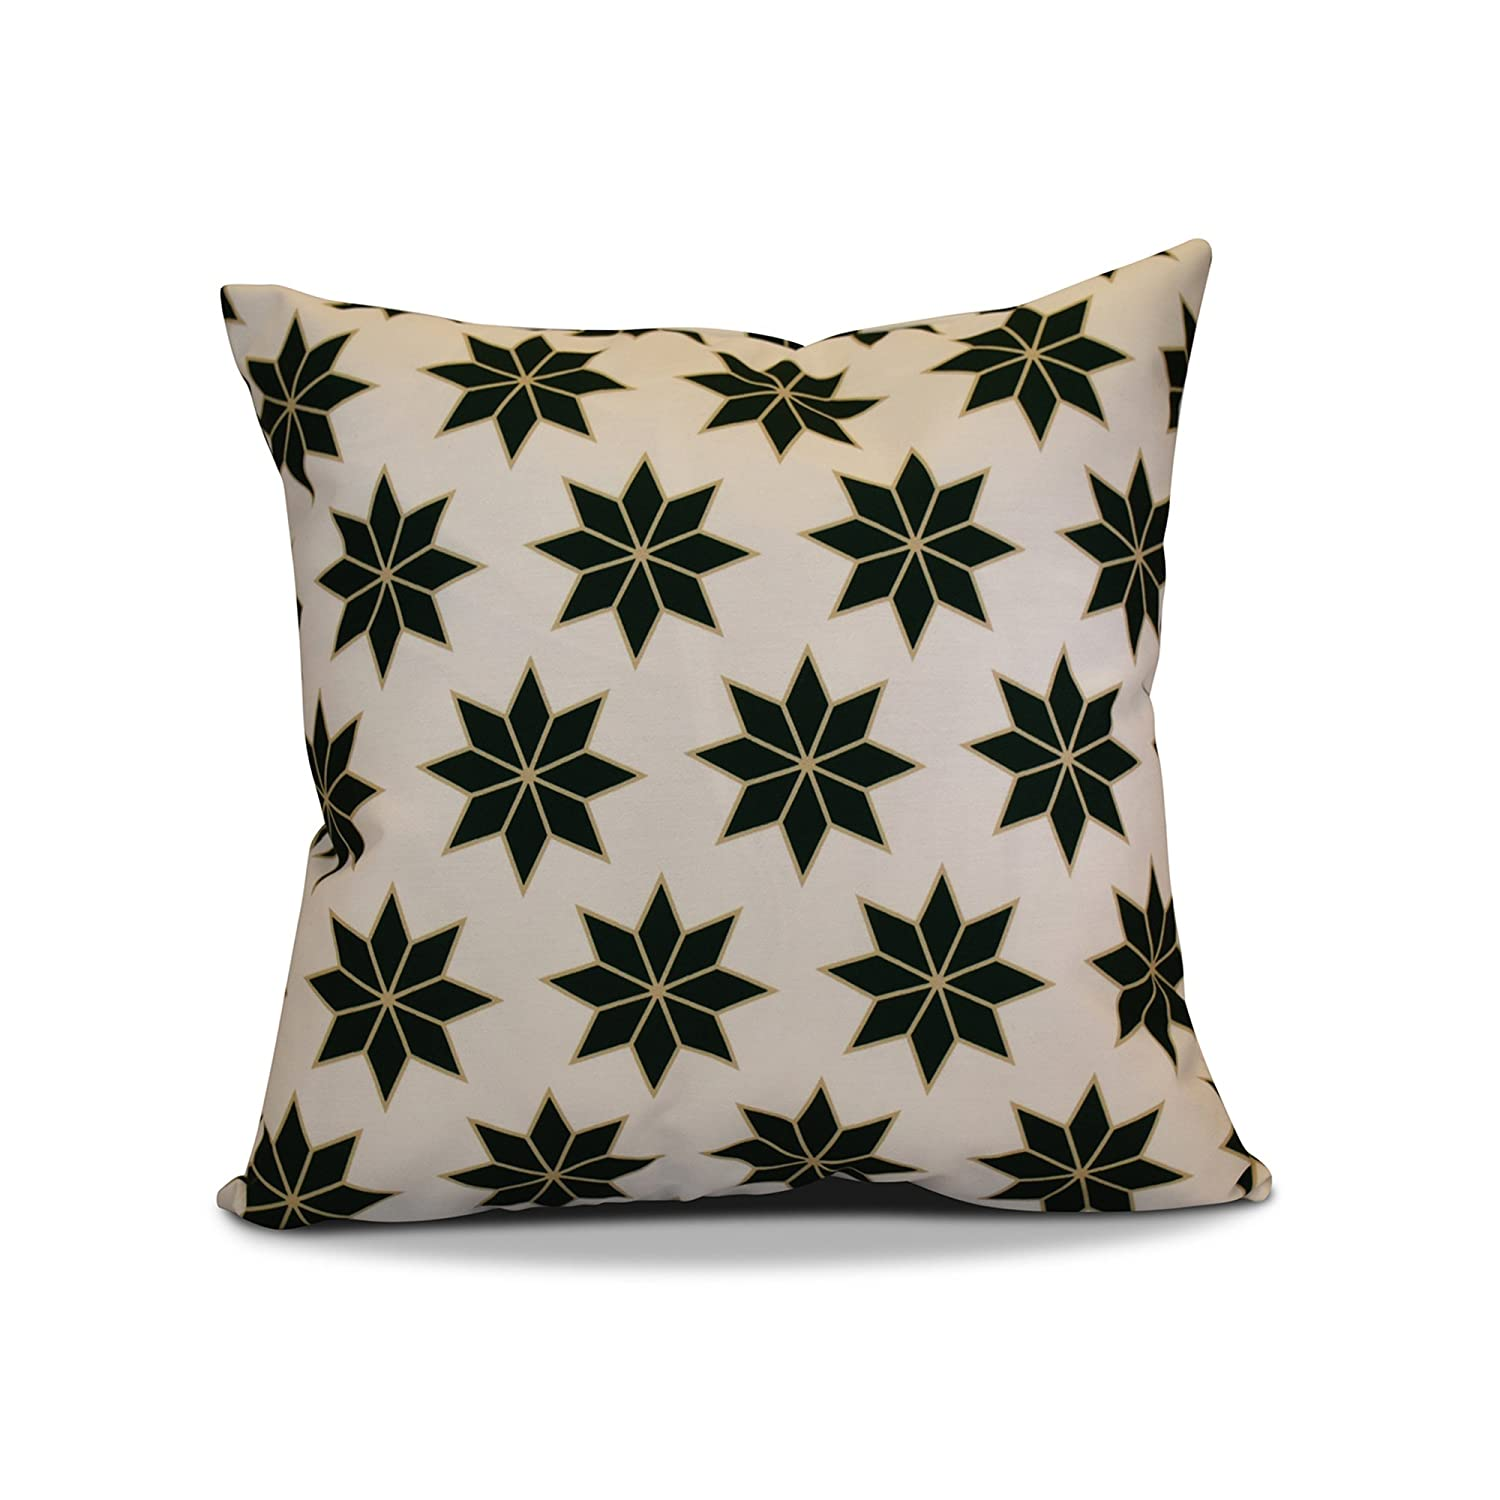 E by design PHGN668GR26TA6-26 26 x 26 inch, Decorative Holiday 26x26 Green